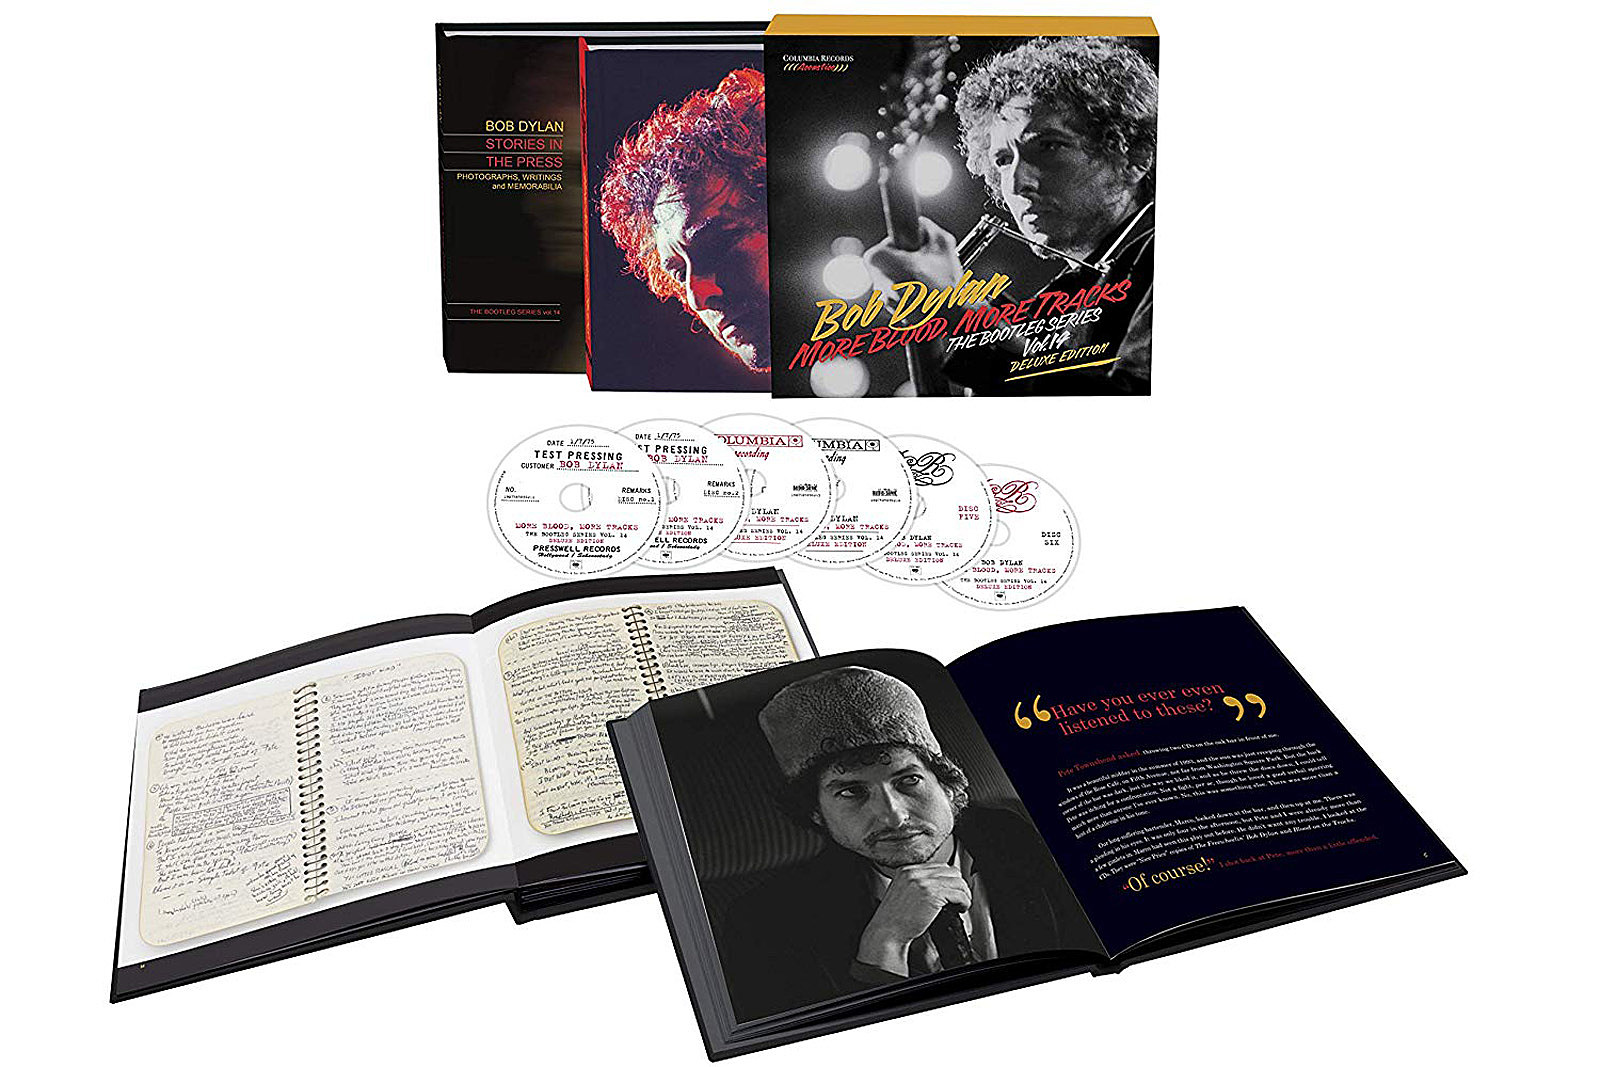 Bob Dylan to Release 'Blood on the Tracks' Box Set